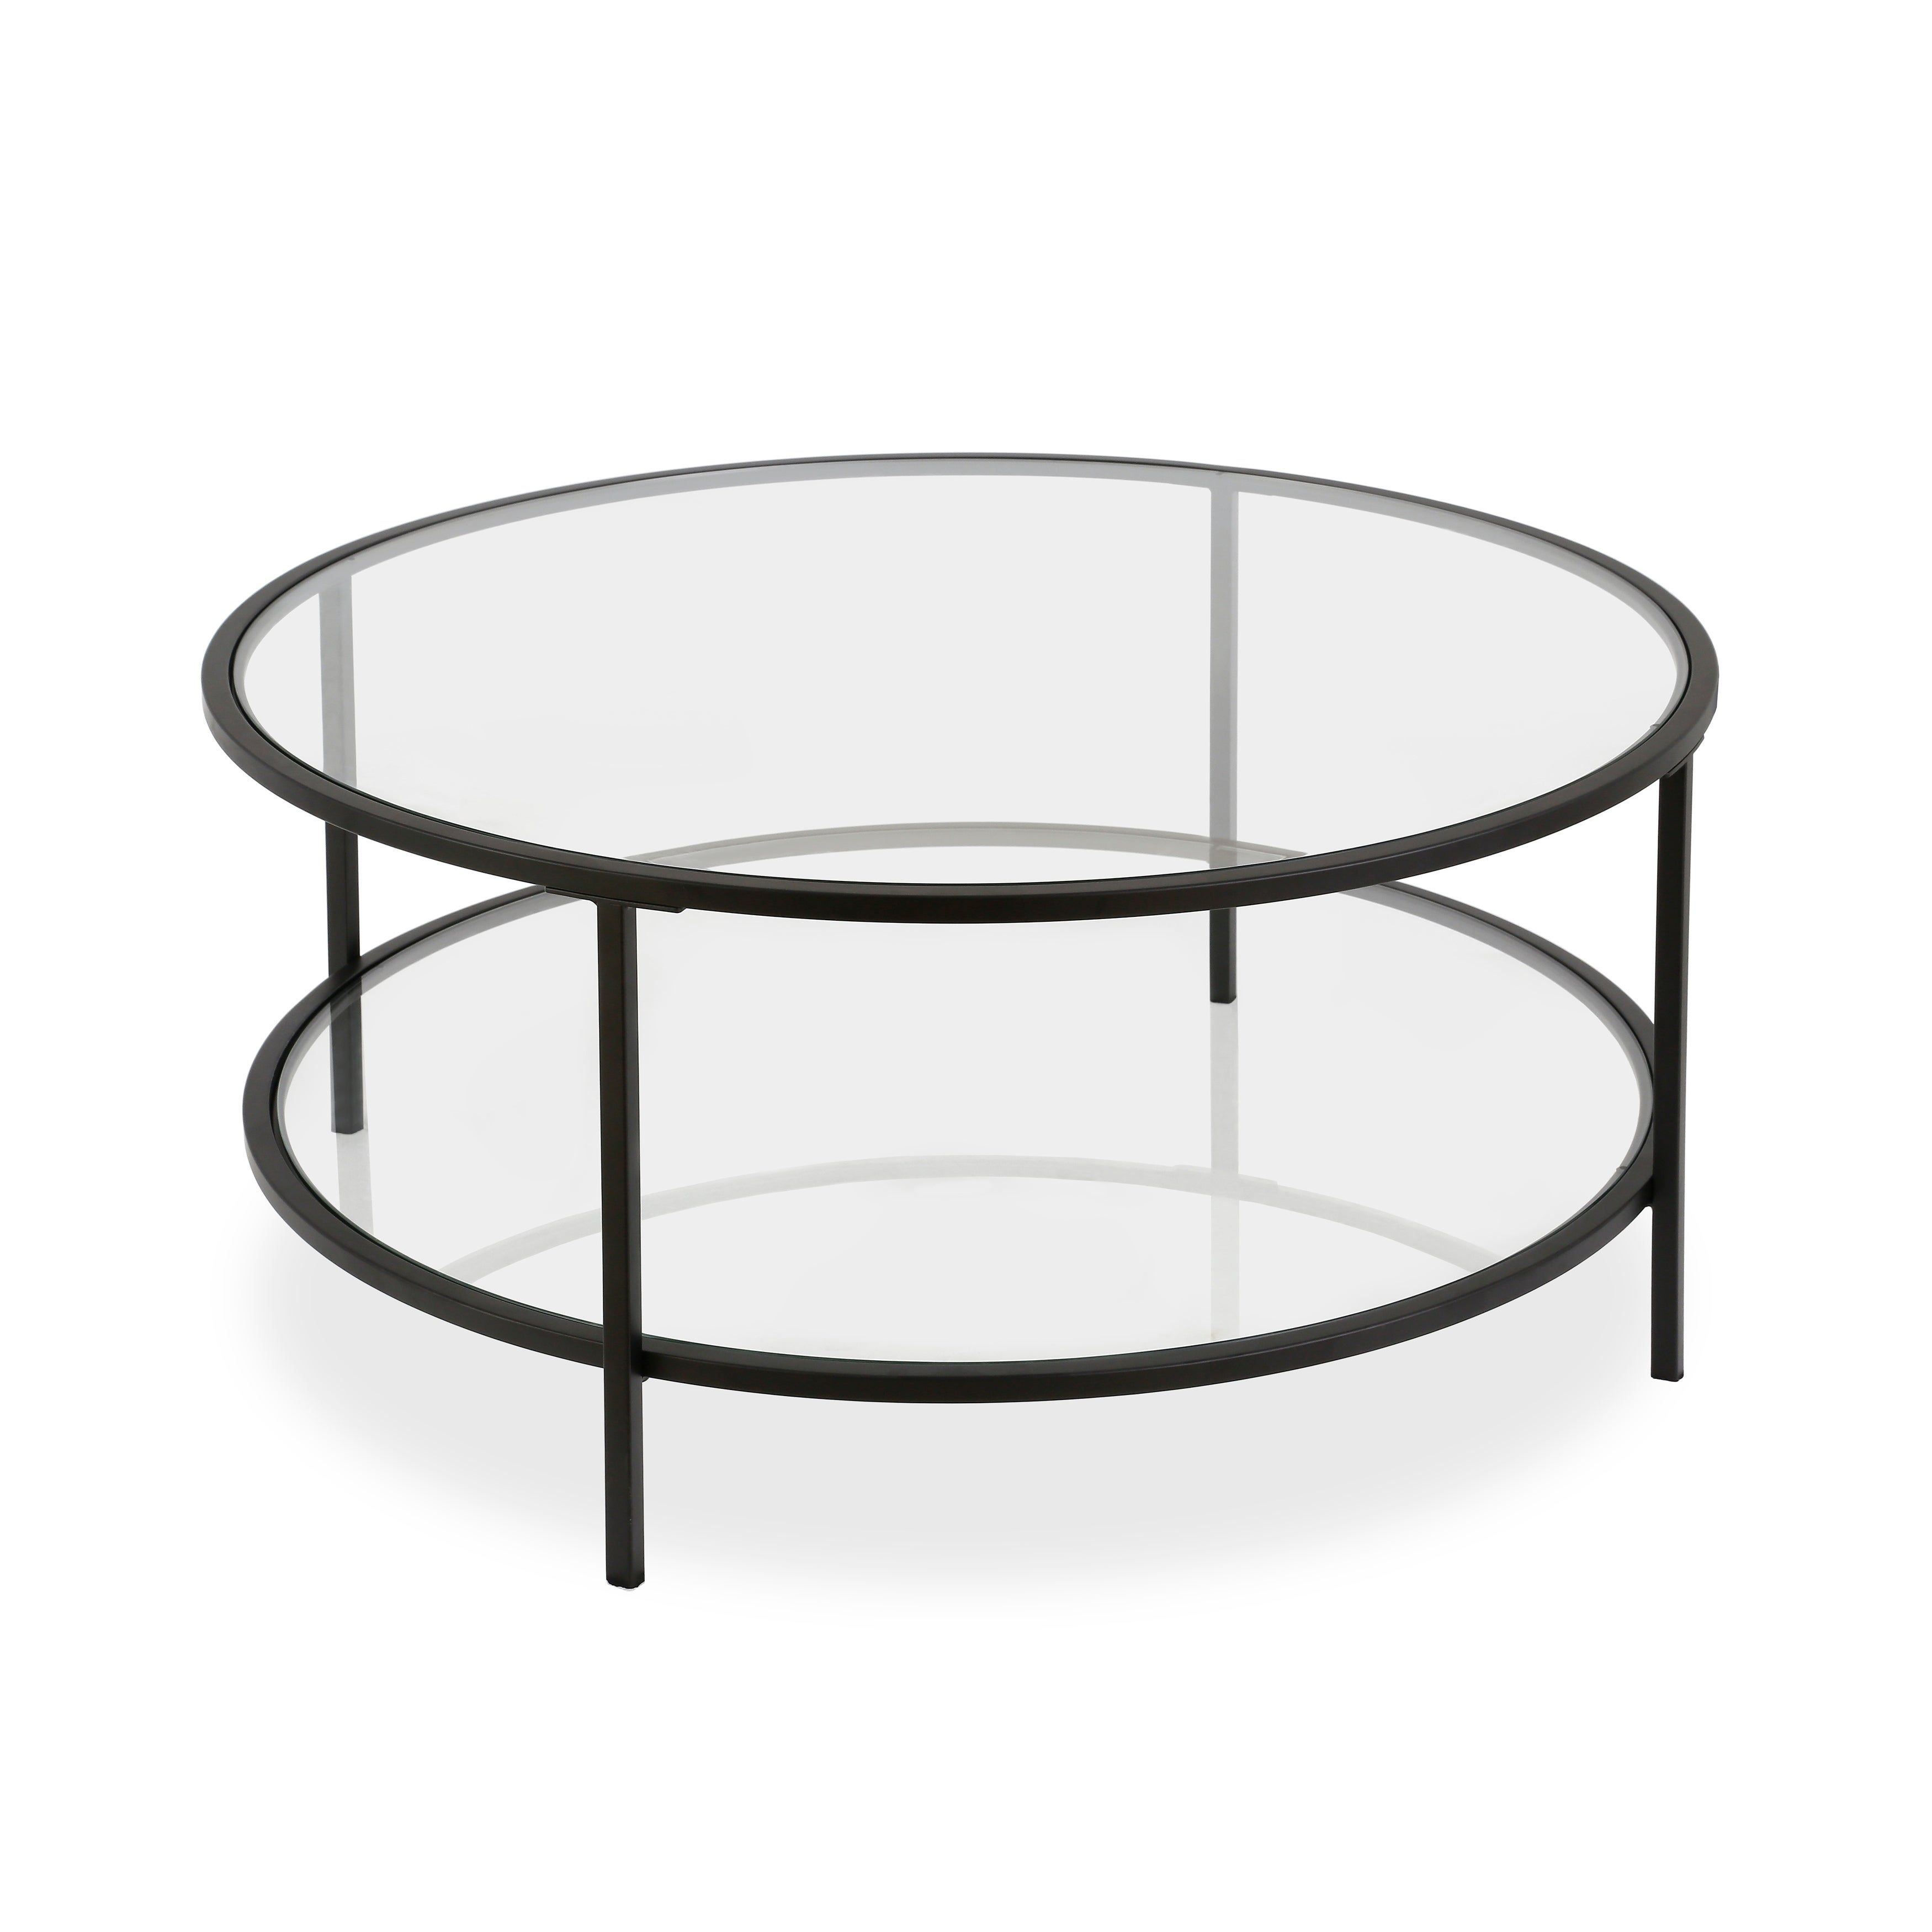 Shop Orwell Blackened Bronze Steel And Glass 1 Shelf Coffee Table   On Sale    Free Shipping Today   Overstock   23566427